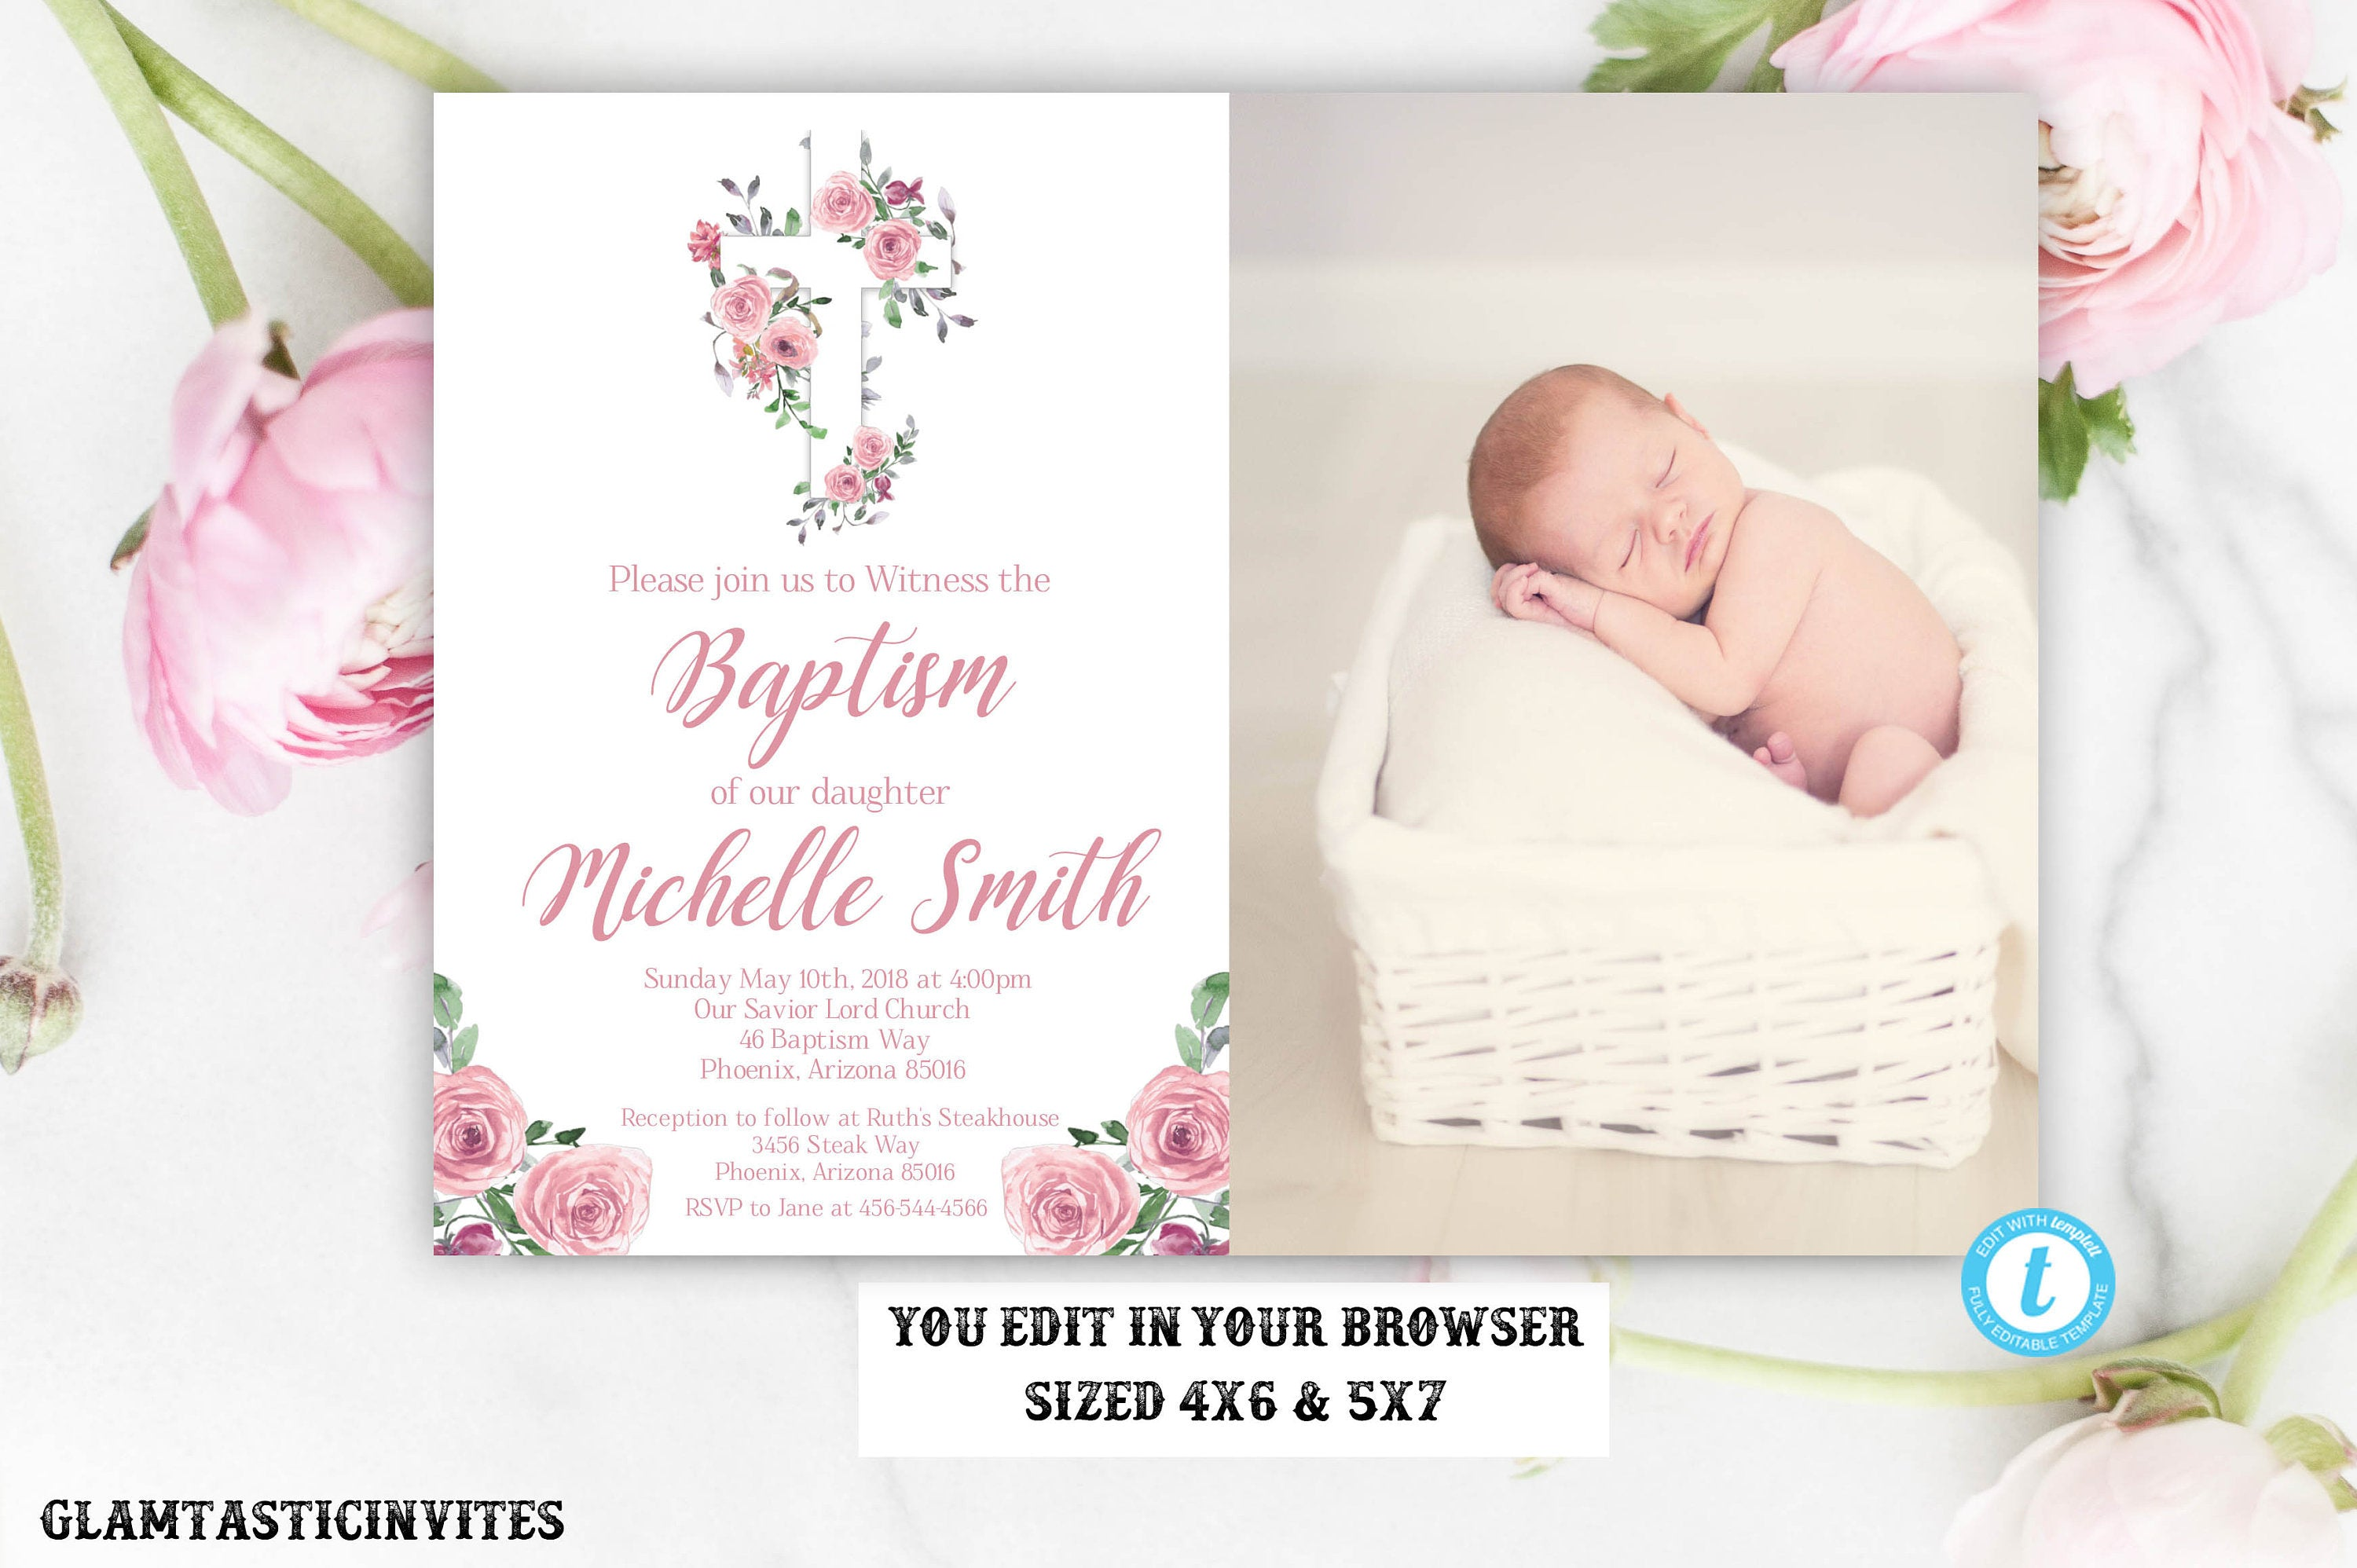 Girl Baptism Invitation, Floral Baptism Invitation Template, Baptism Invitation Template, Printable Baptism Invitation, Baptism Invitation